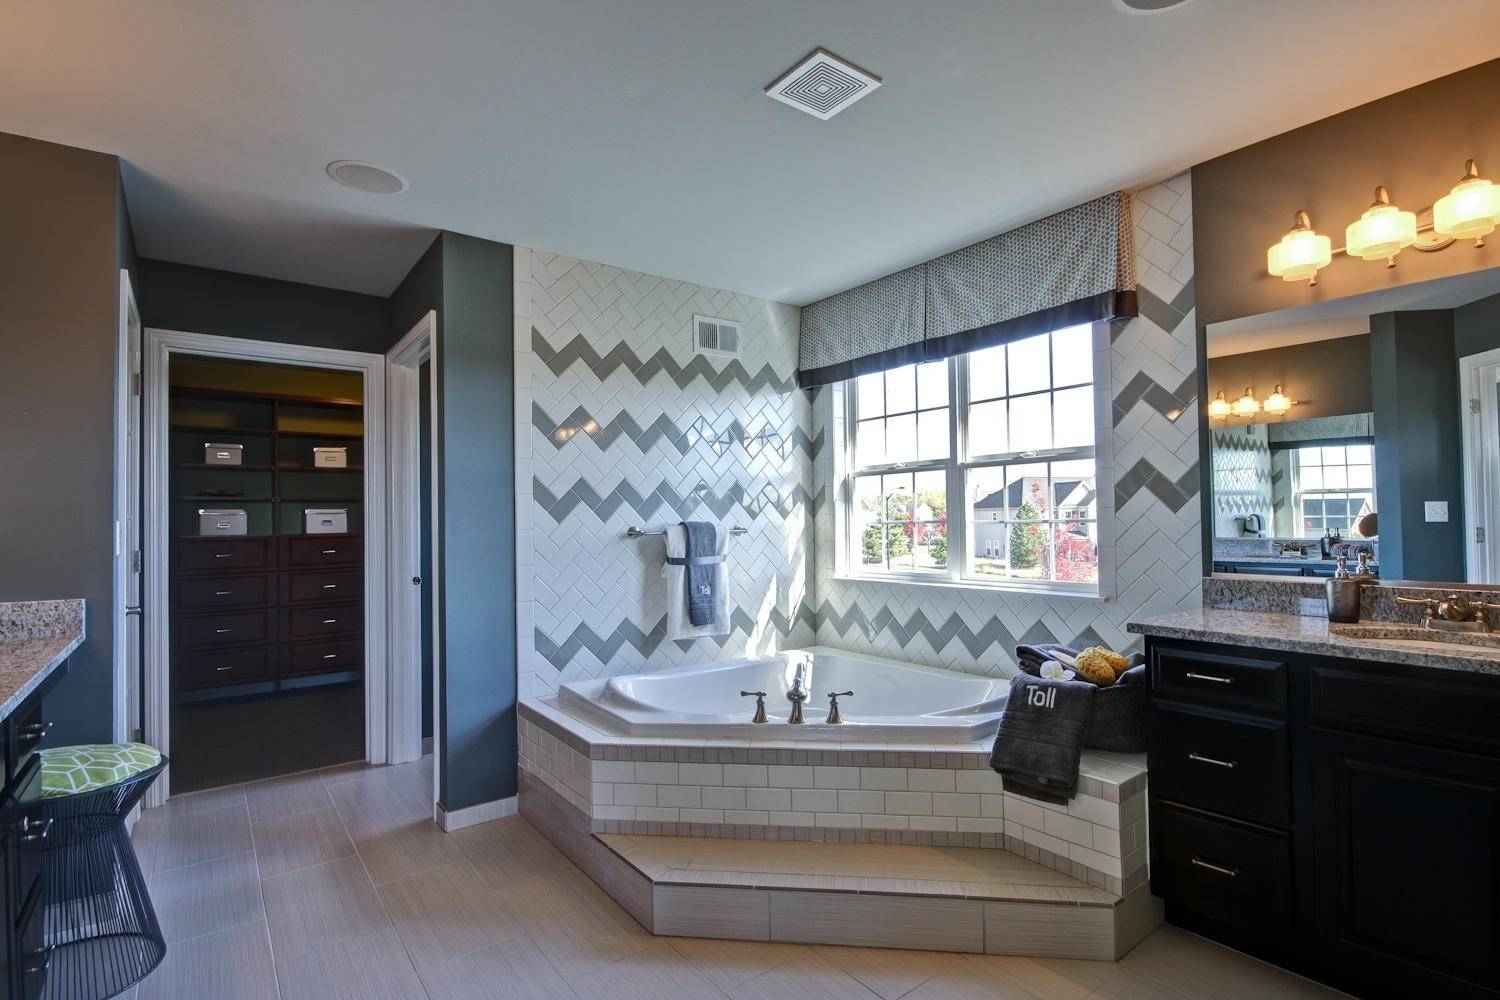 The master bath in the Harvard model has both a tub and large, walk-in shower.